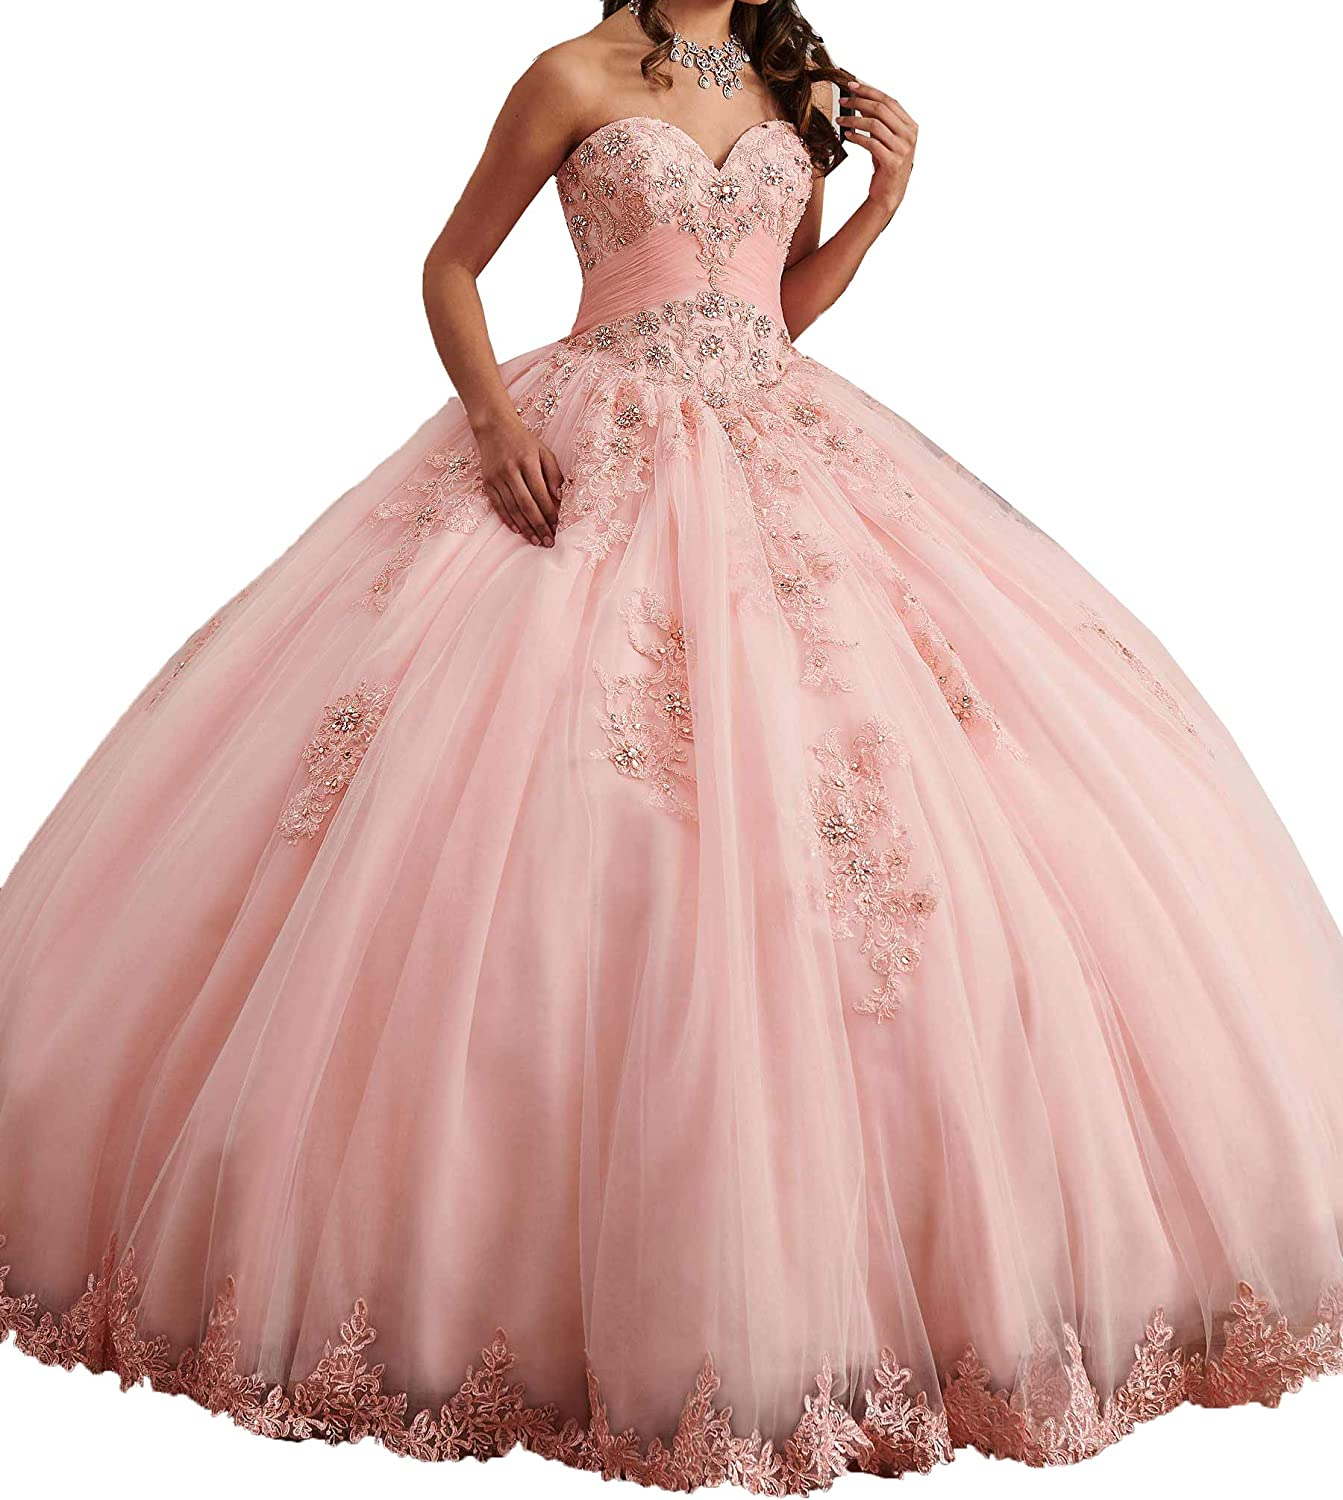 EieenDor Women's Sweet 16 Quinceanera Dresses Lace Appliques Beaded Princess Long Prom Ball Gowns Plus Size